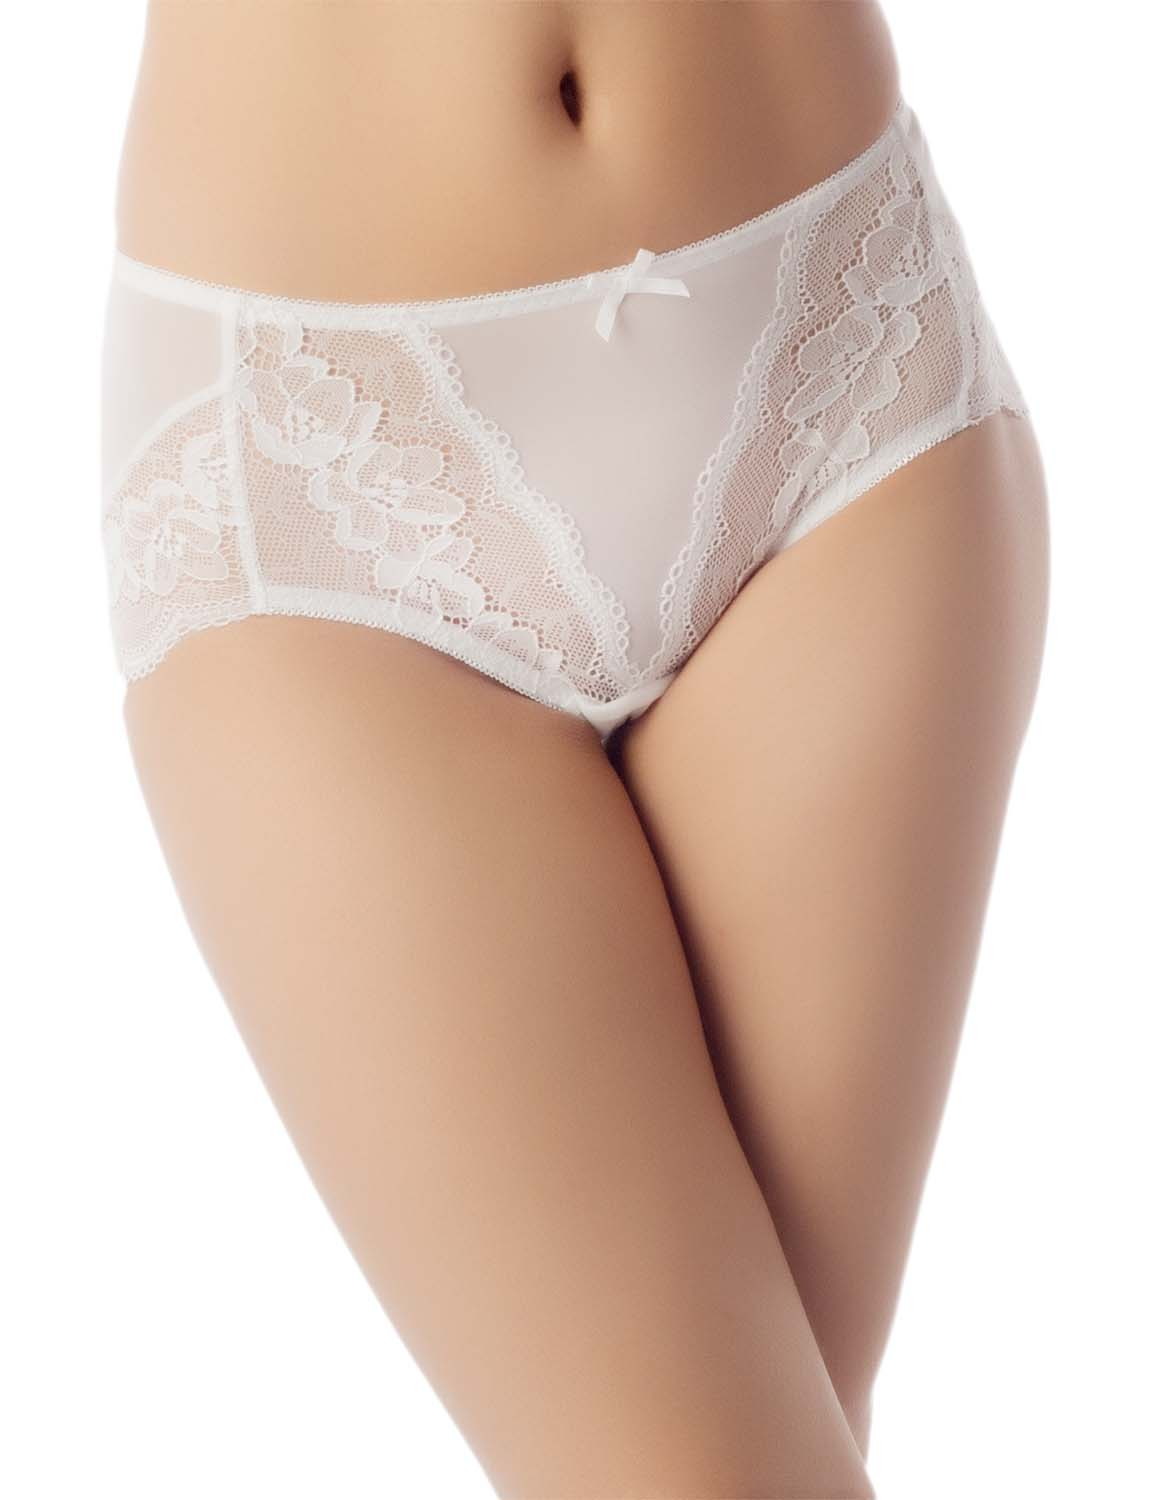 Women's Underwear Sheer Lace See-Through Bowknot Mid Waist Hipster Panty, Size: 2XL, White